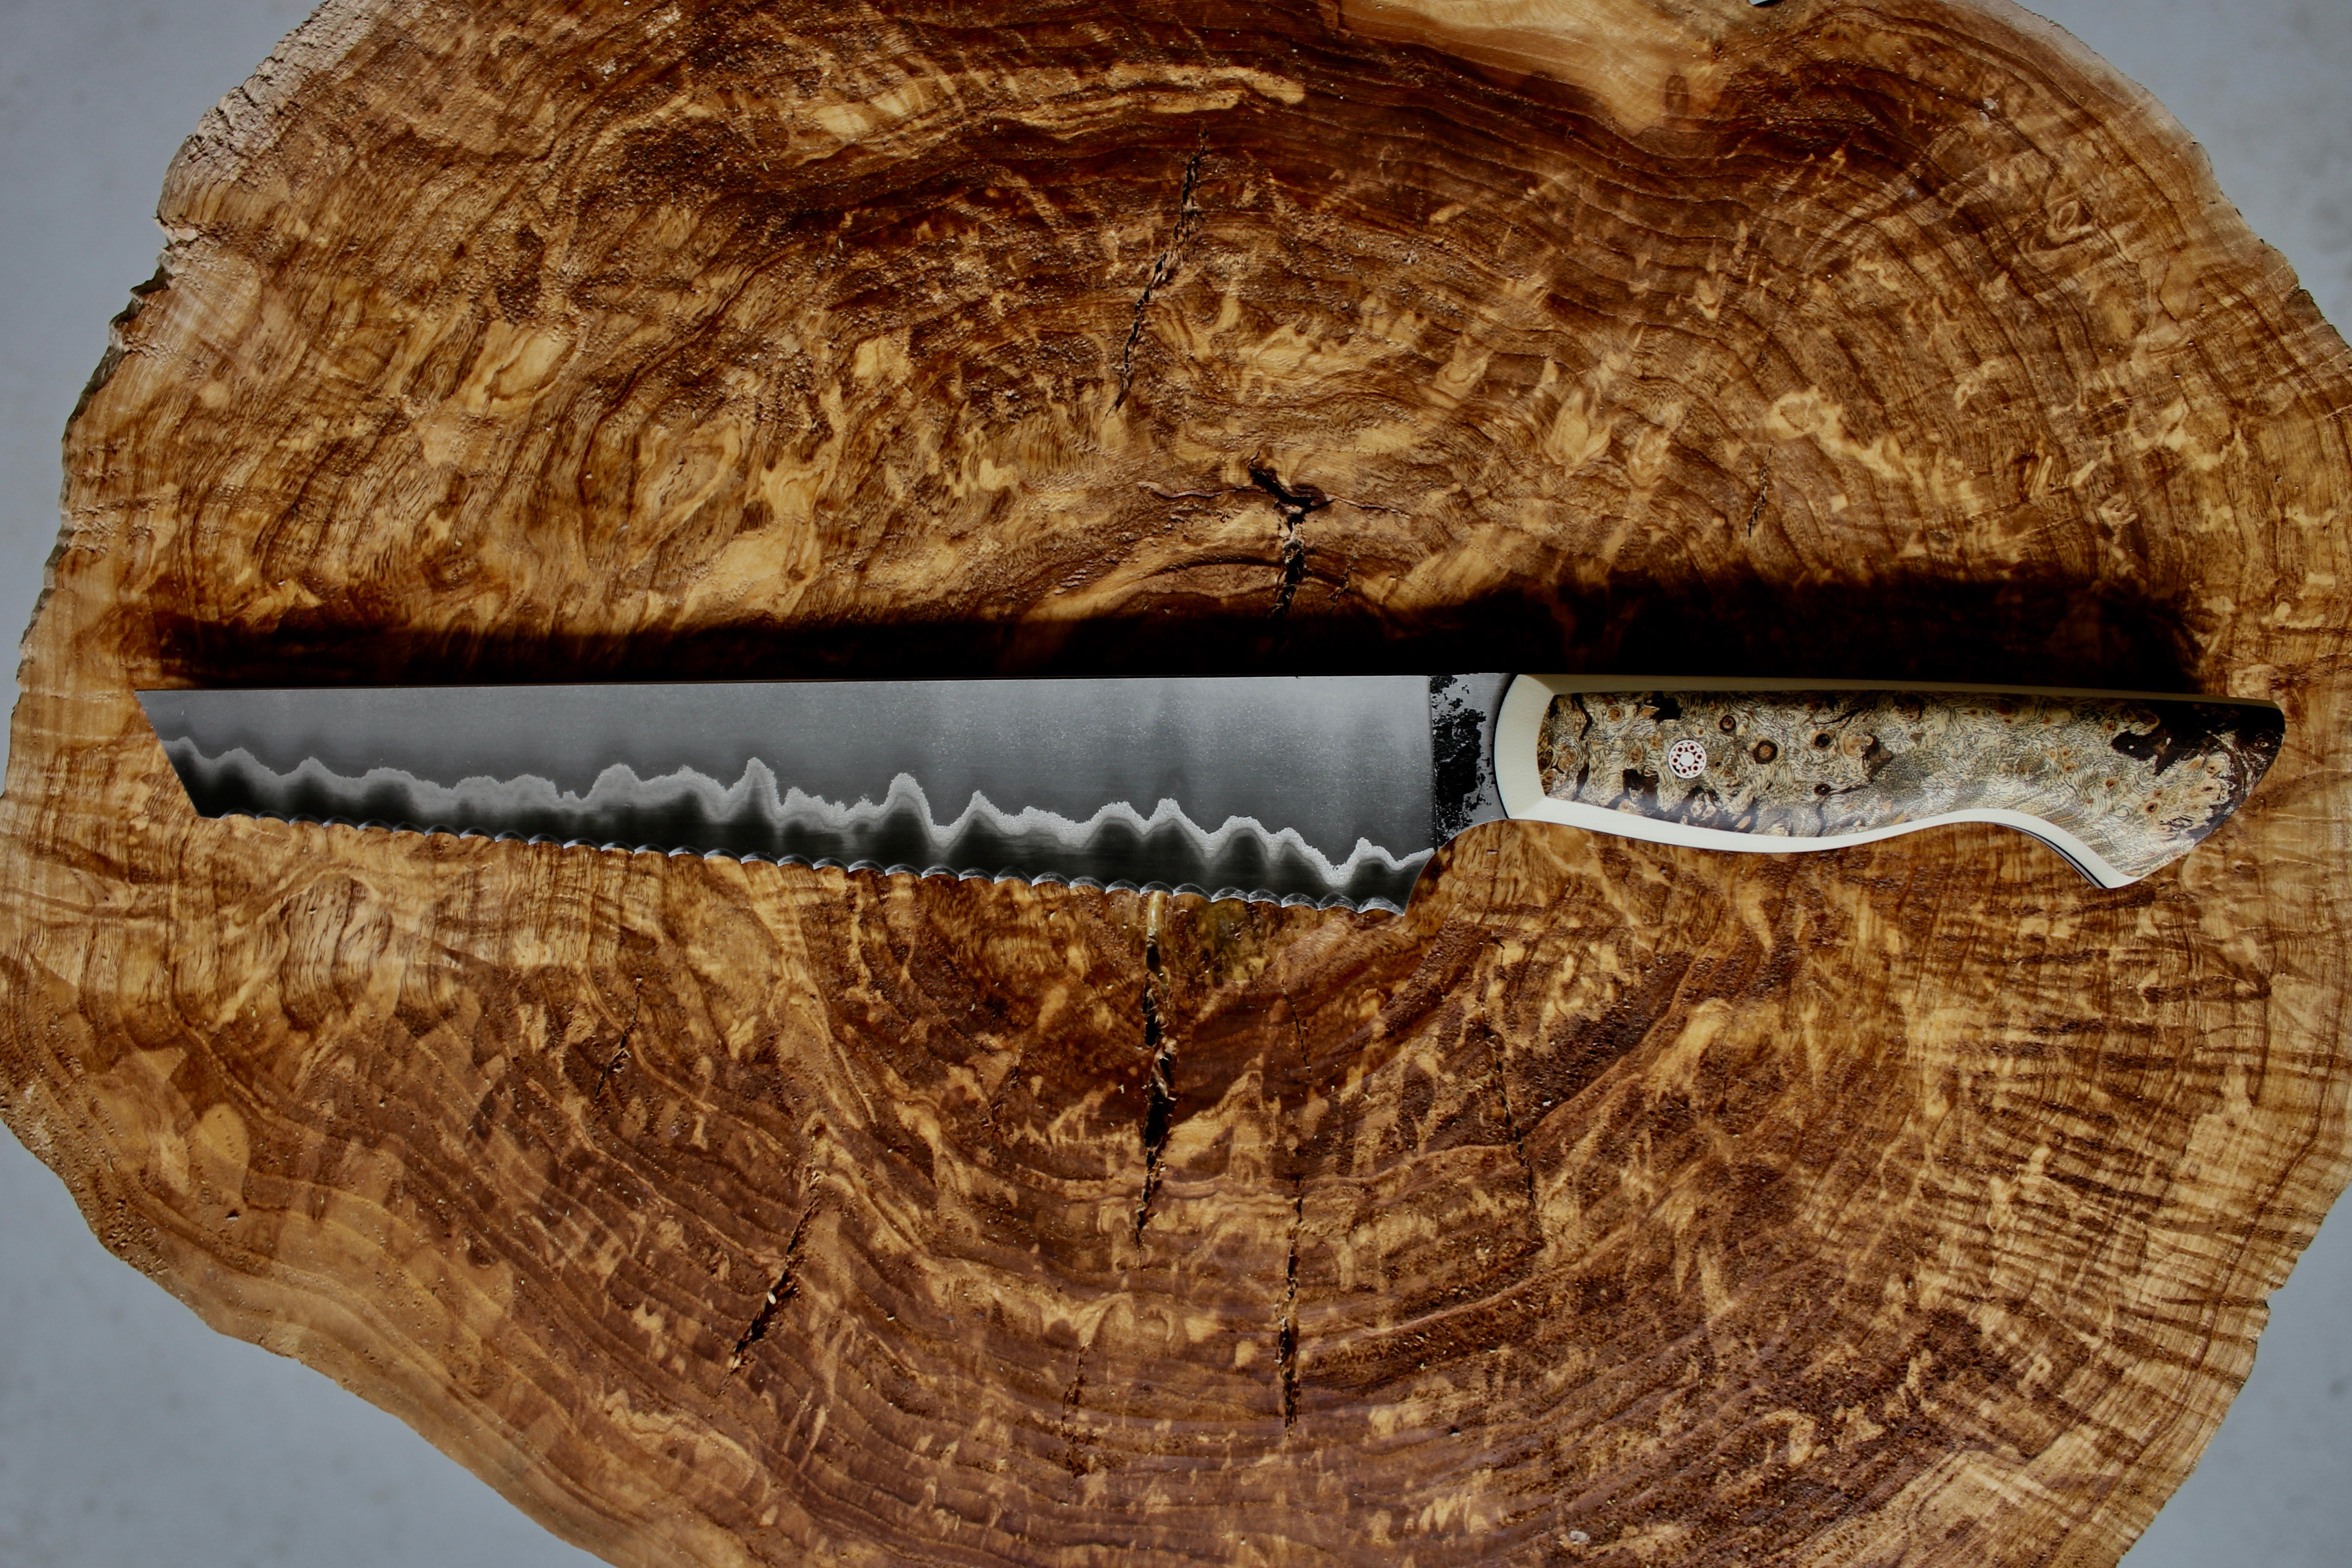 Custom knife with serrated edge from Culter in Toronto.